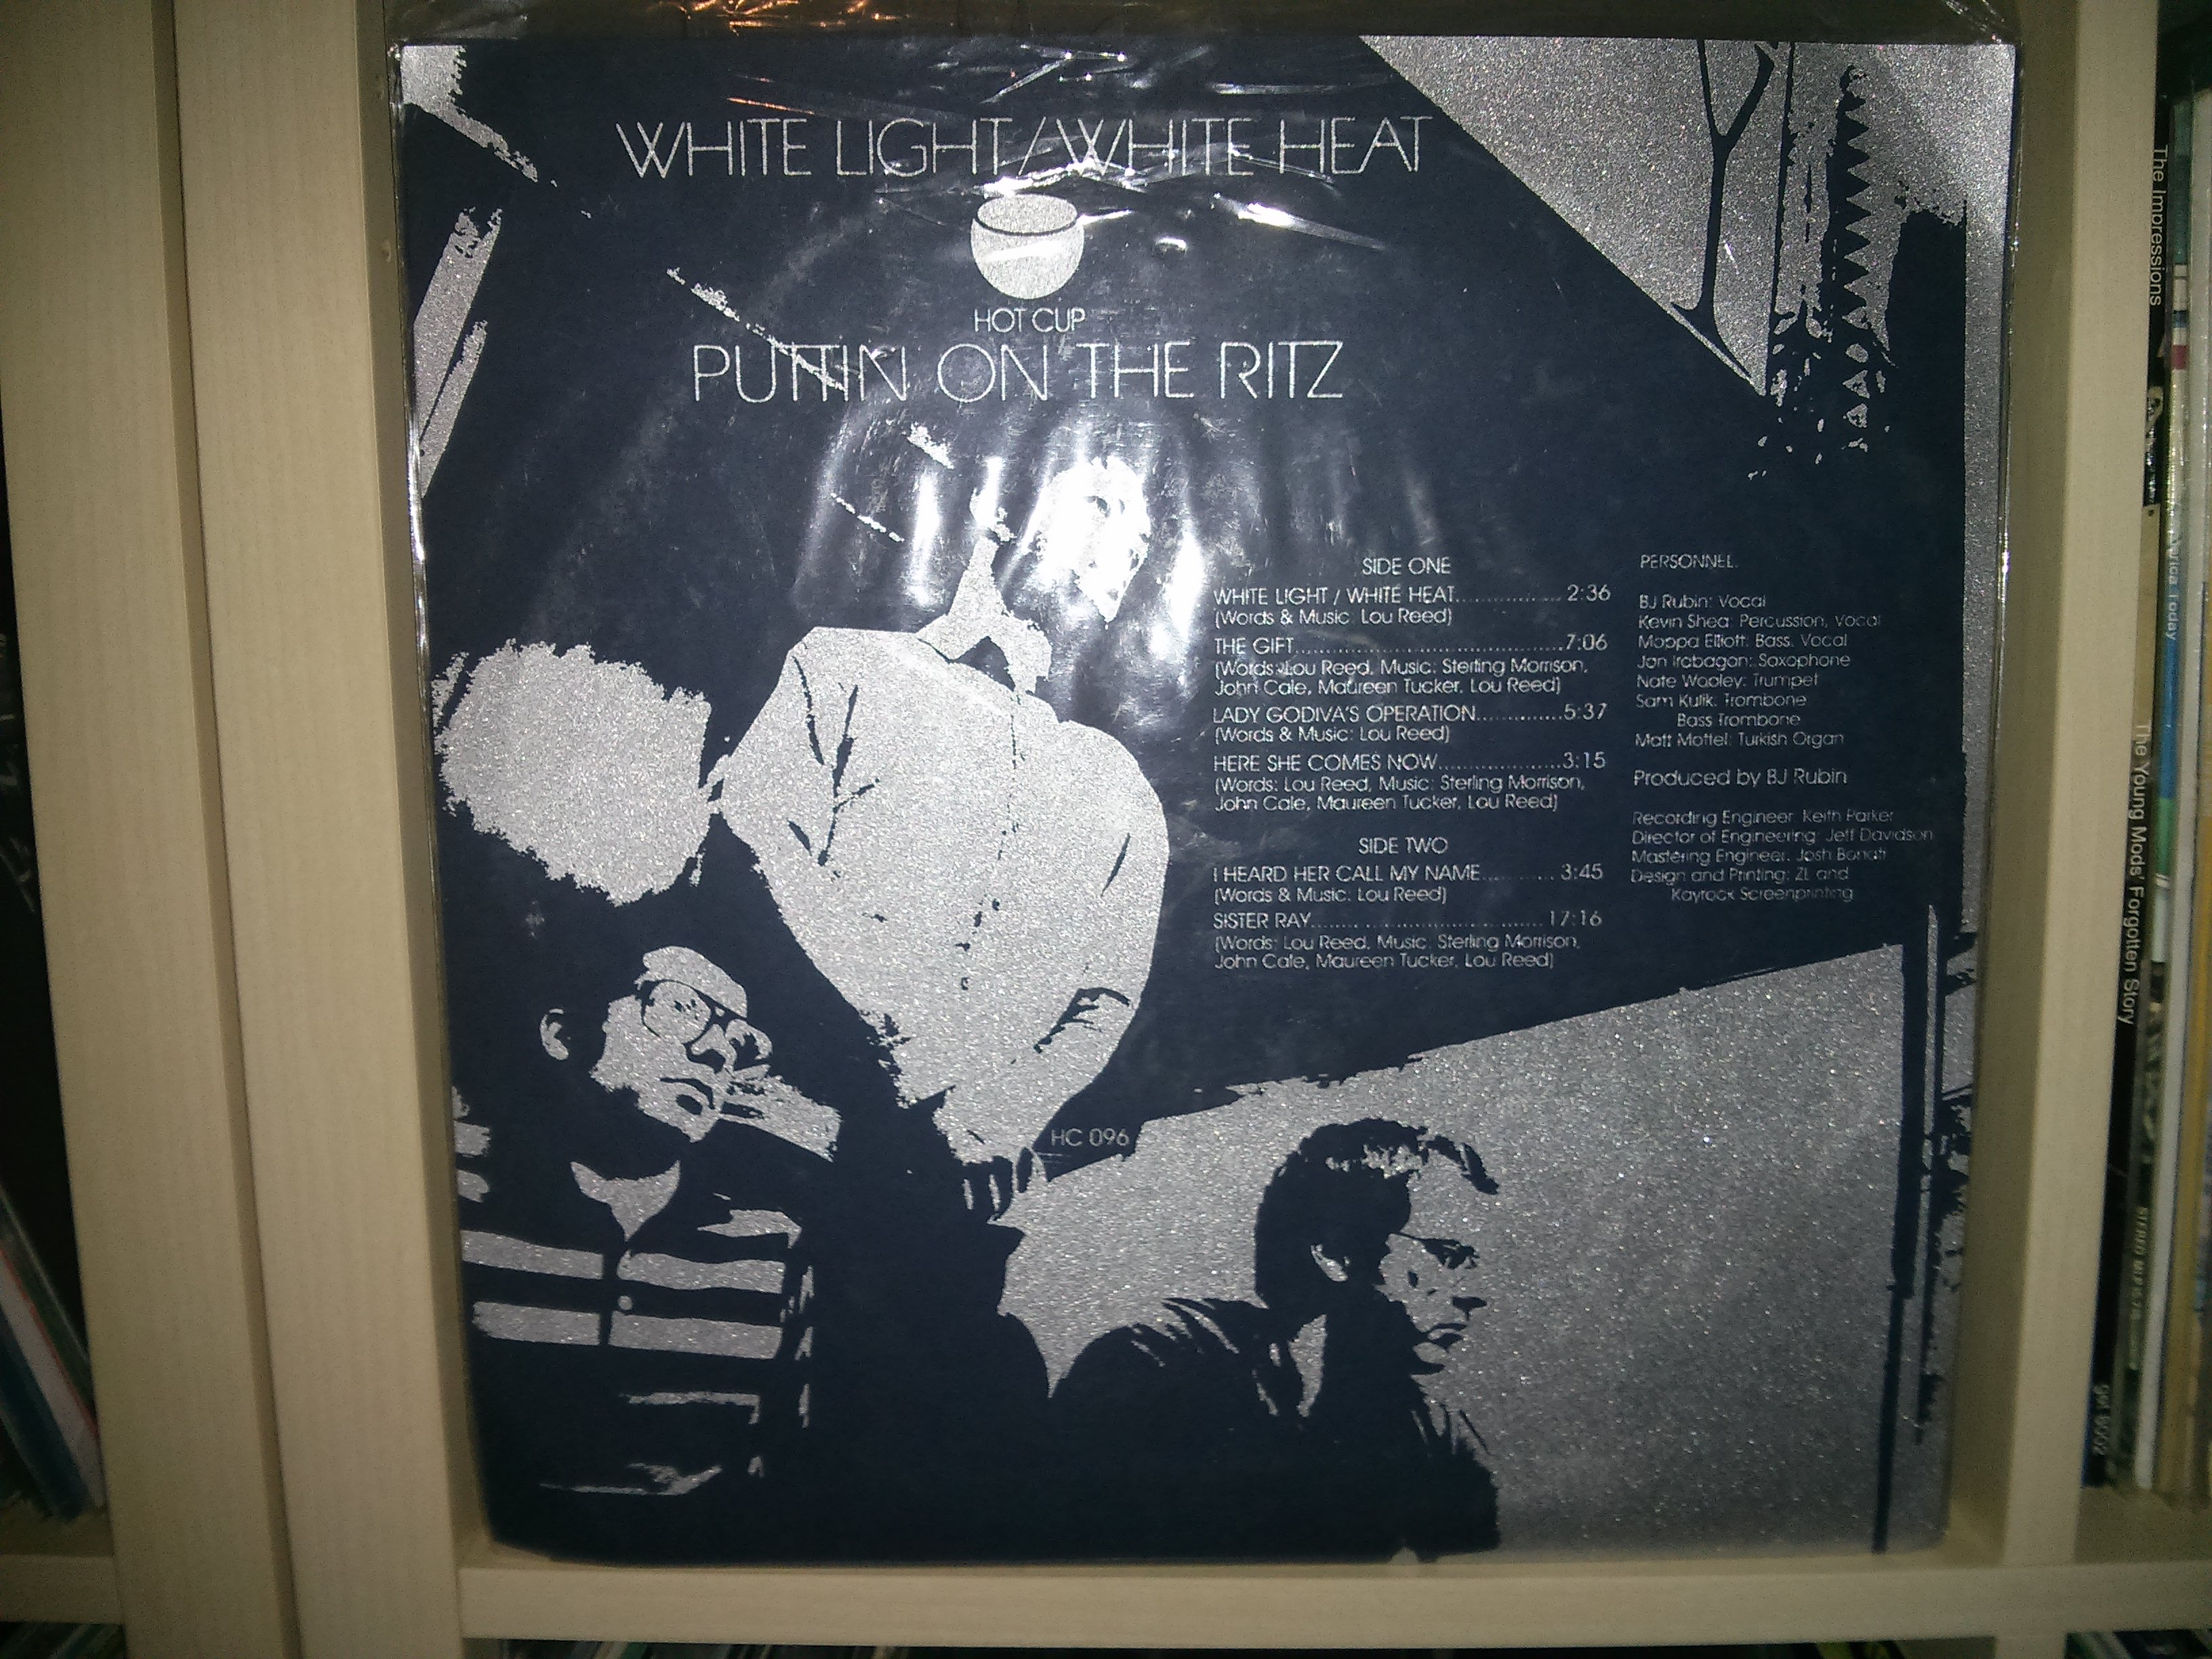 Putting On The Ritz - White Light / White Heat (glitterato 33 giri del 2010) Foto fatta da me.